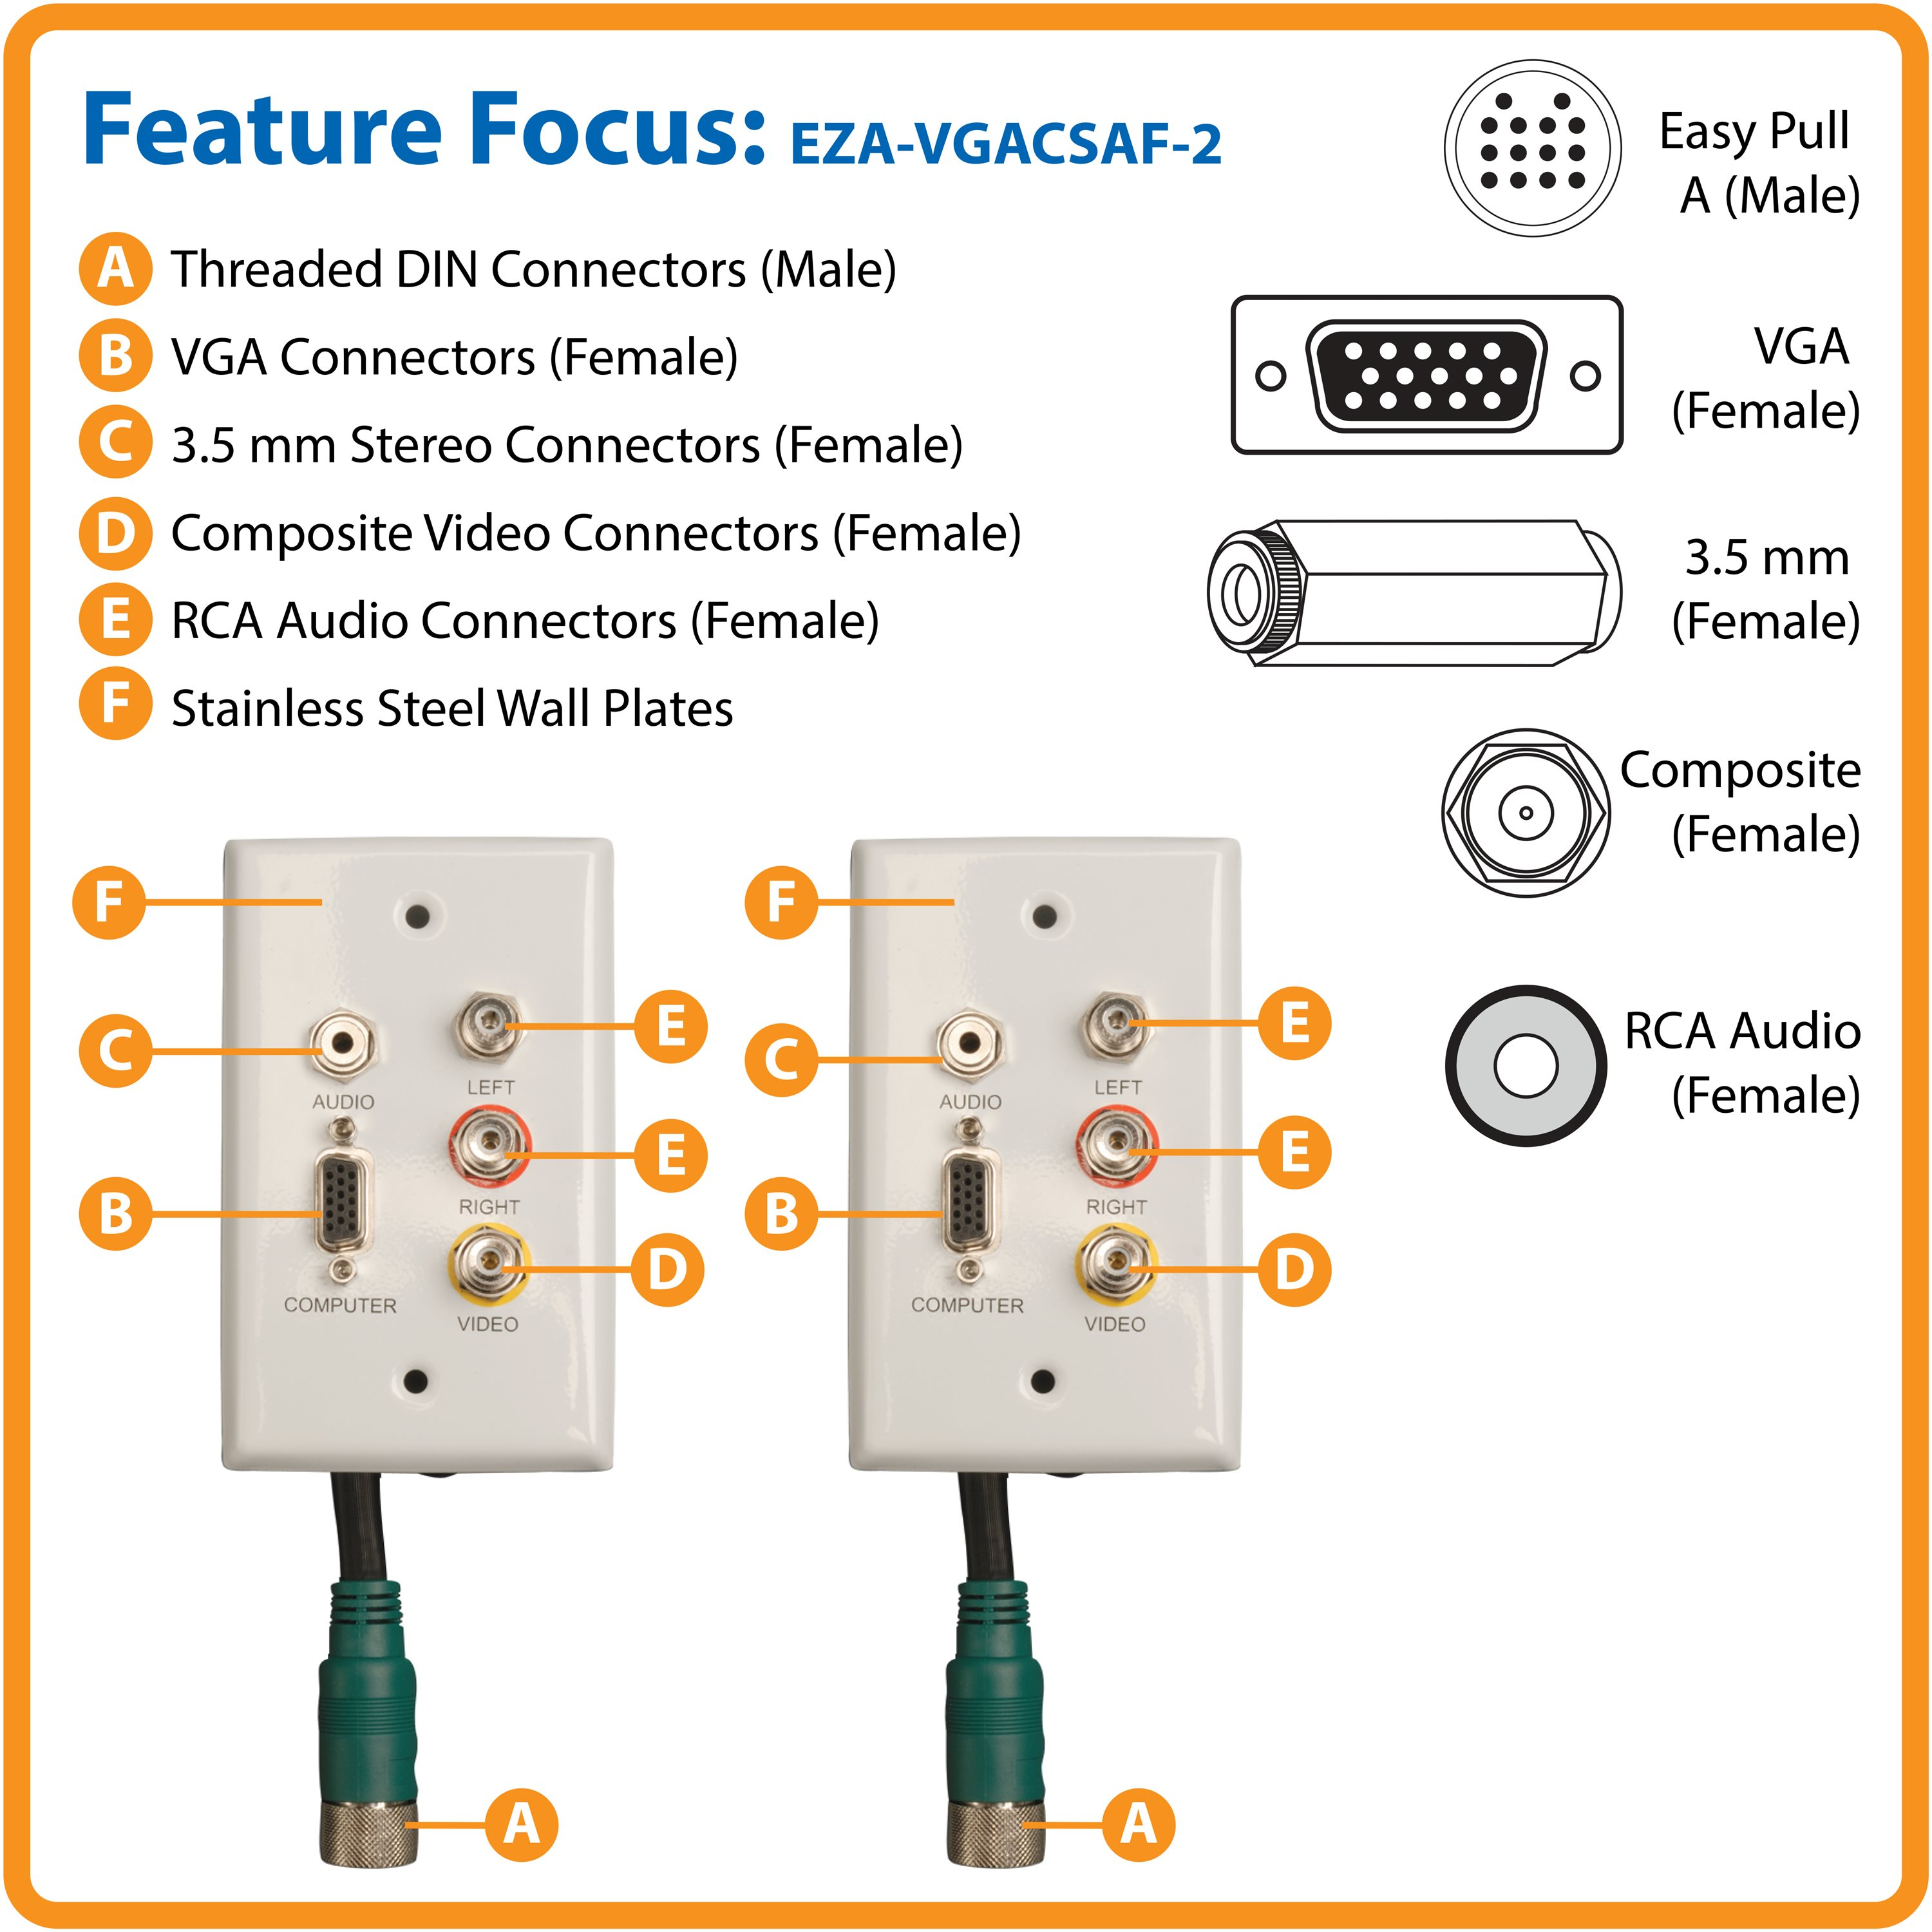 Tripp Lite Easy Pull Type A Vga Connector Kit Wall Plate Rca Audio Video Connectors Complete Long Cable Runs Through Small Spaces Where Standard Size Cant Fit